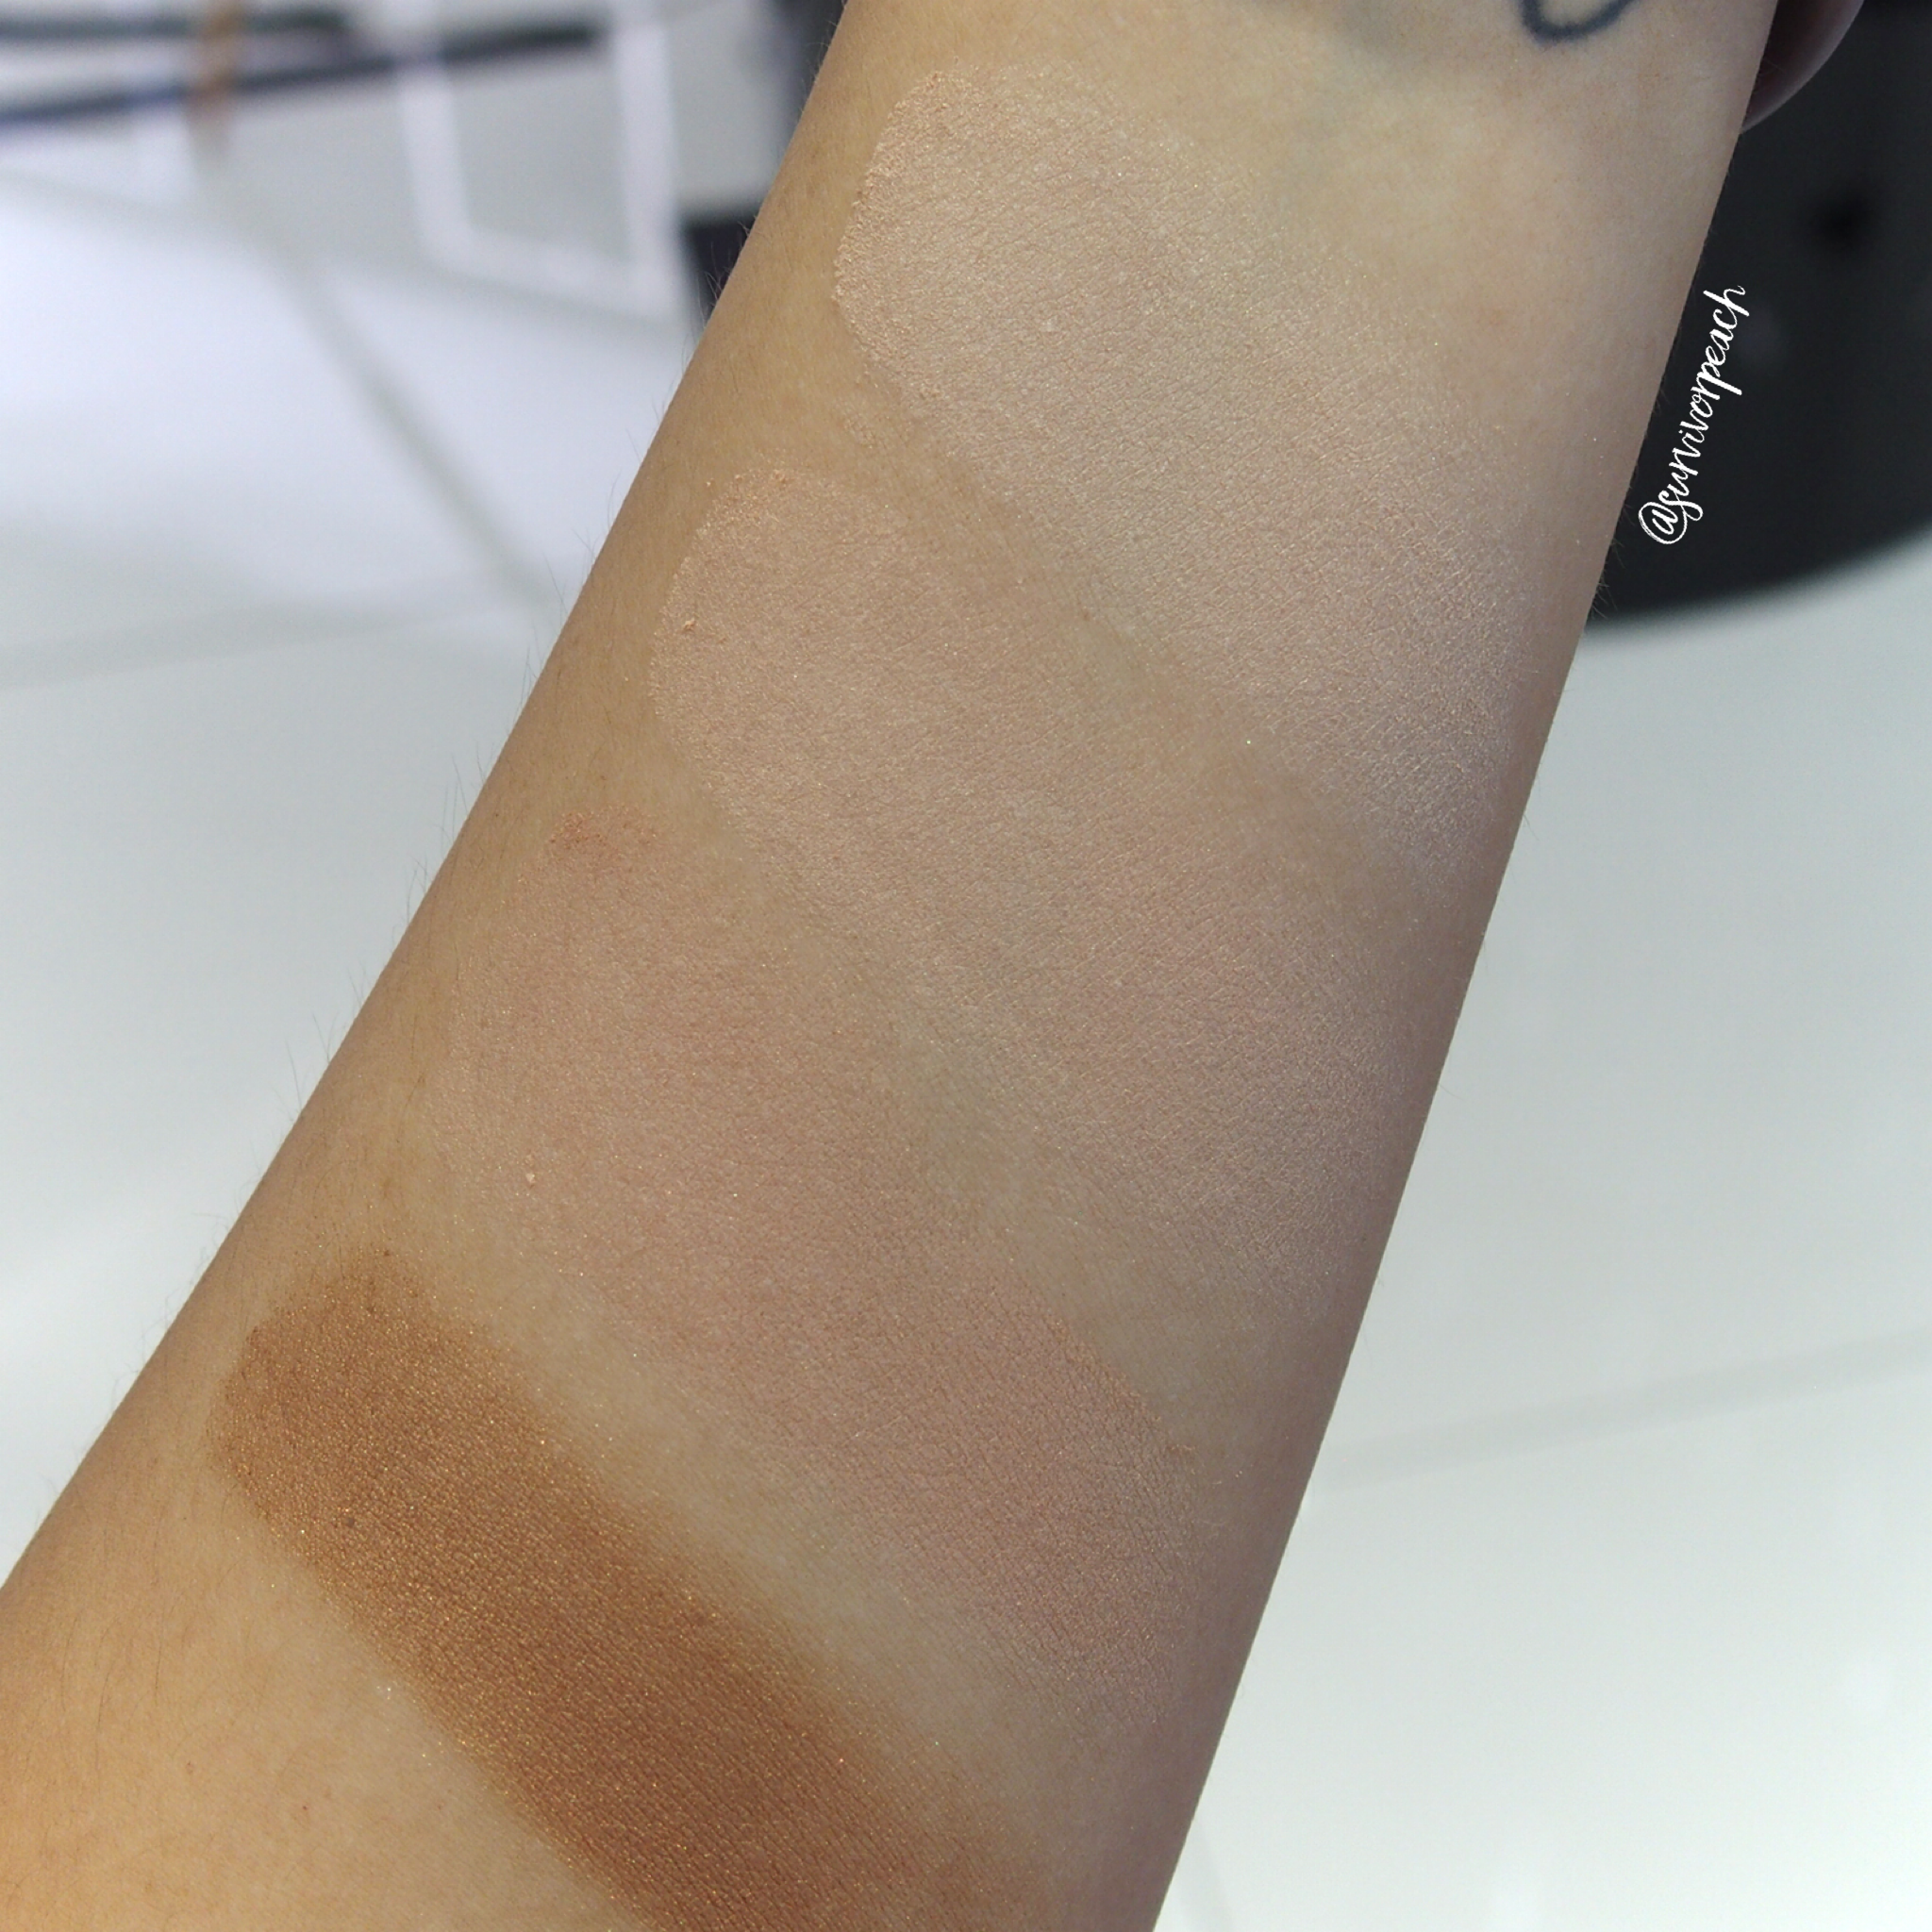 Marc Jacobs Accomplice Instant Blurring Beauty Powder swatches